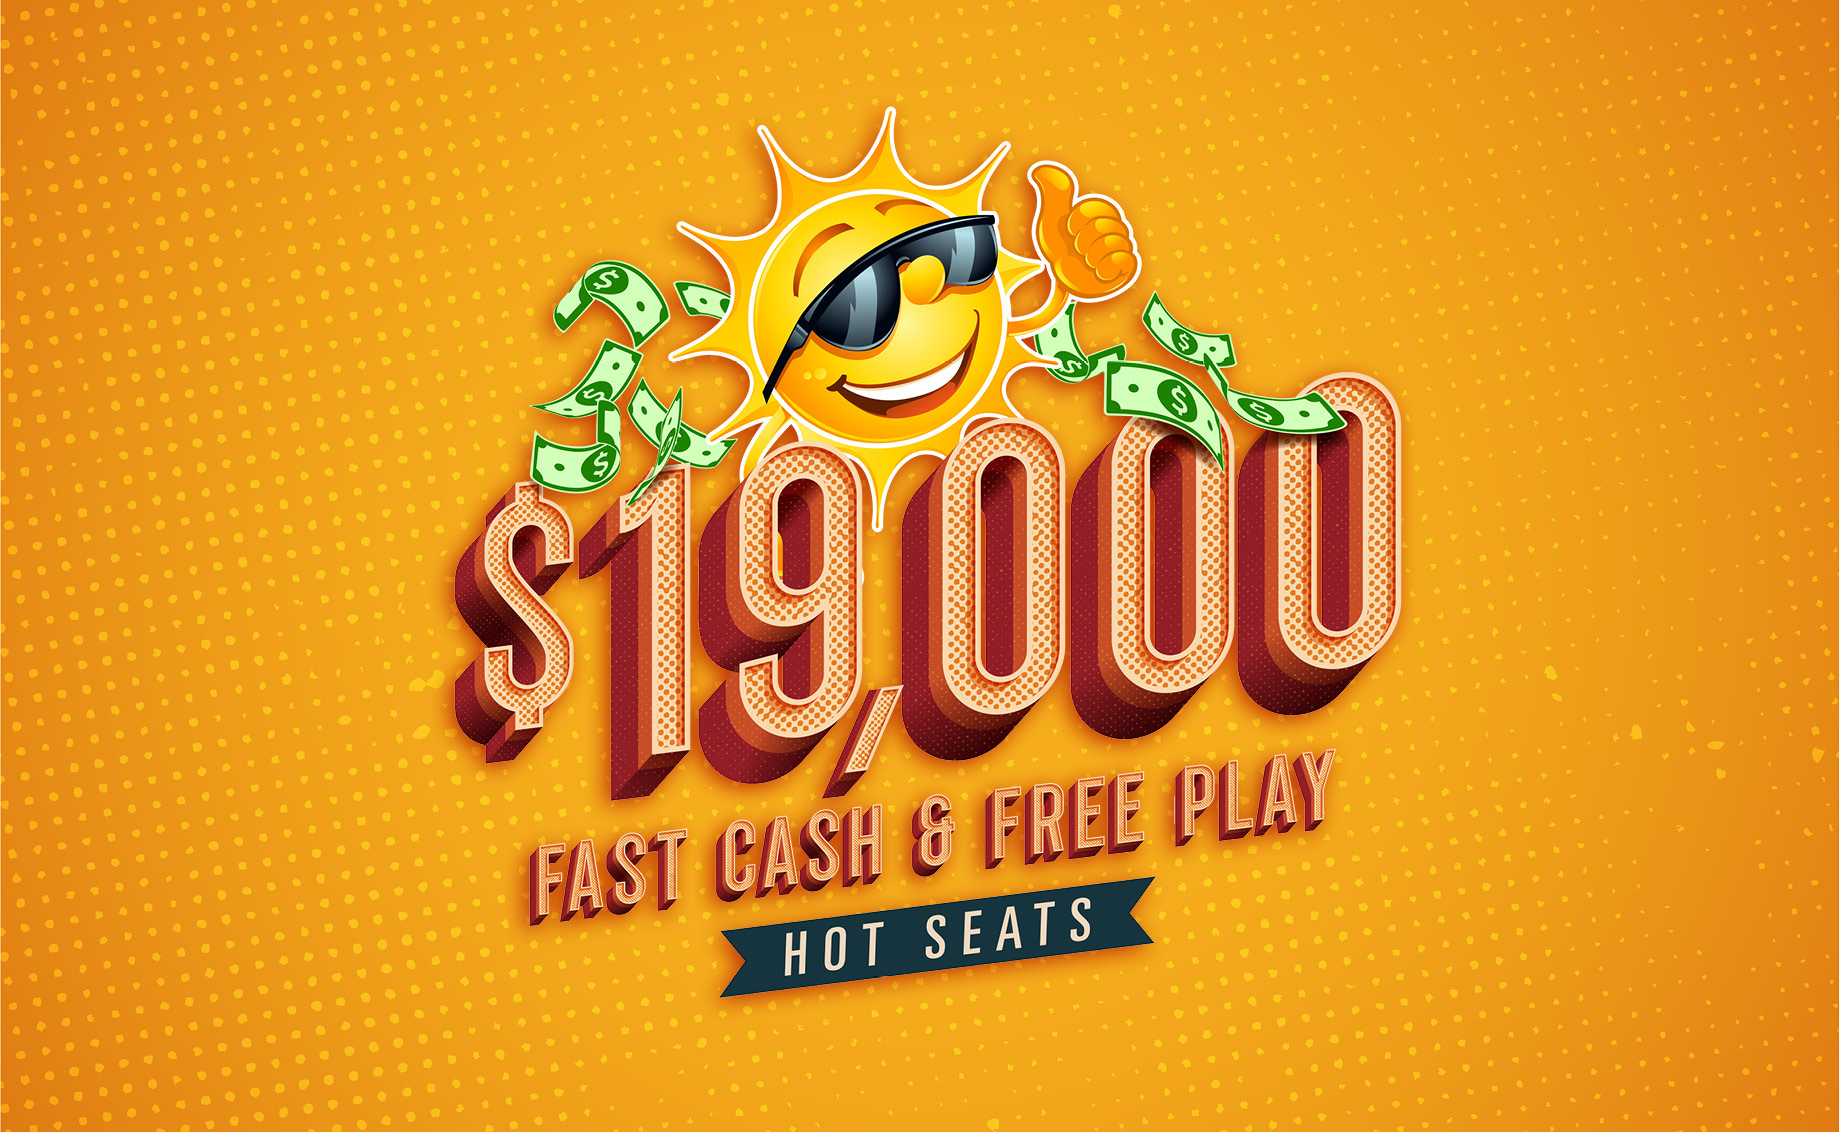 $19,000 Fast Cash & Free Play Hot Seats